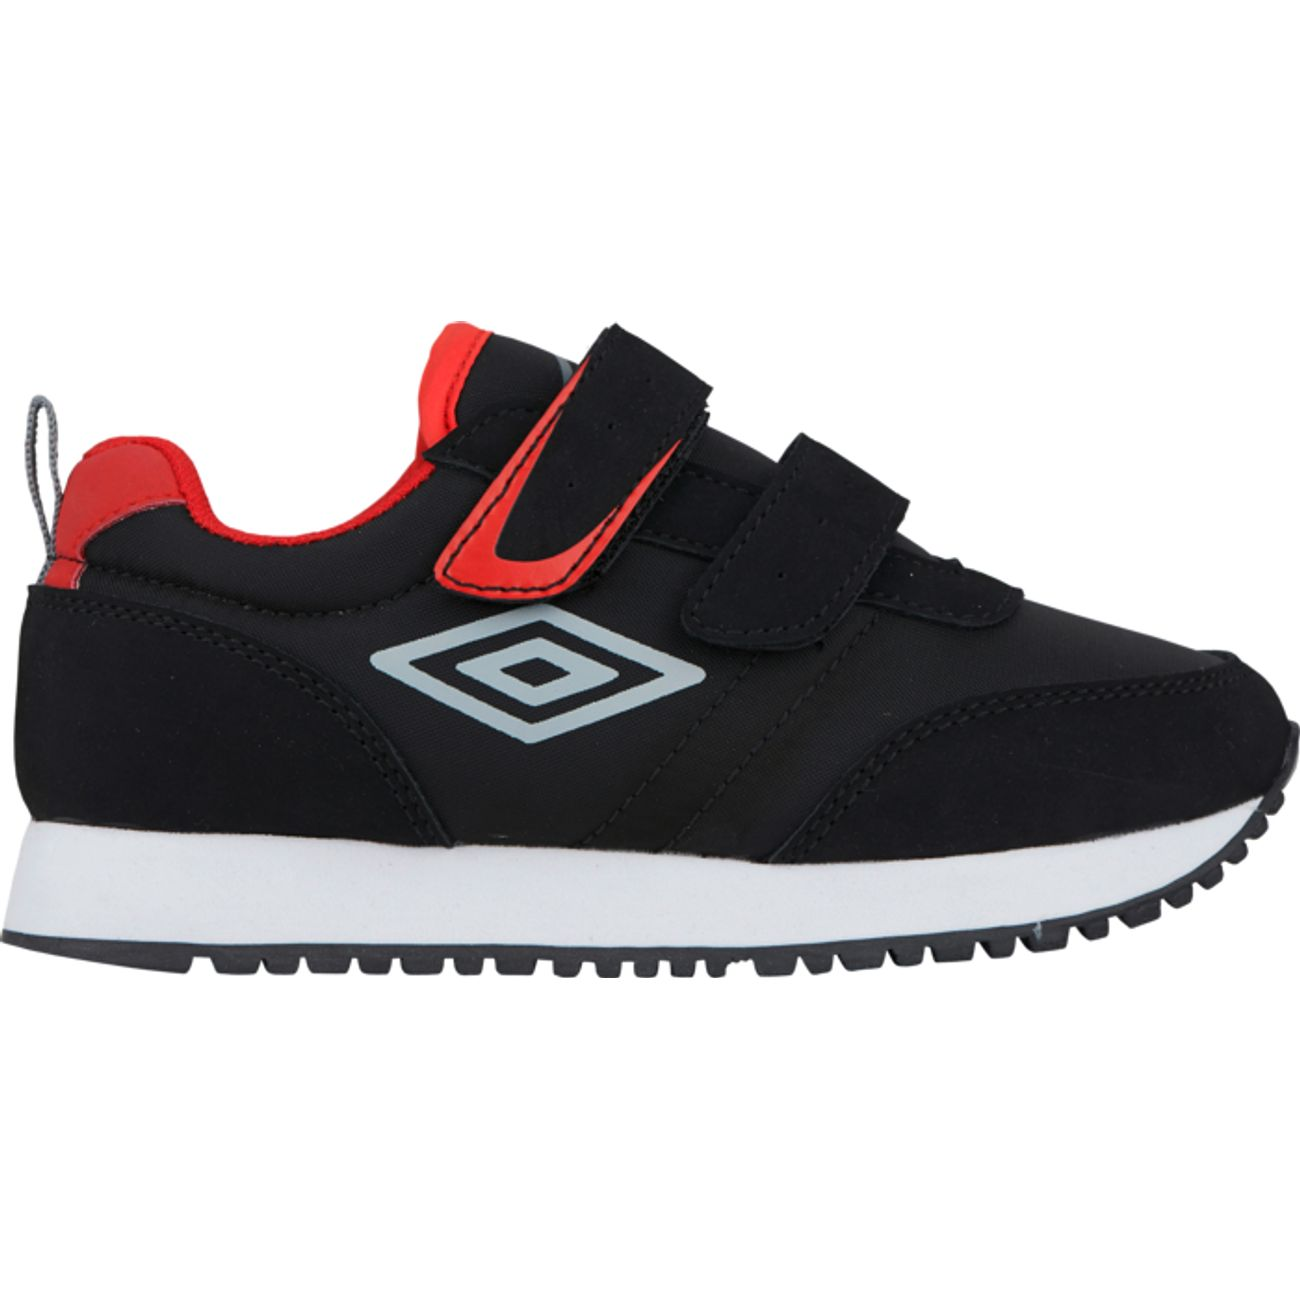 UMBRO JAFFY VLC